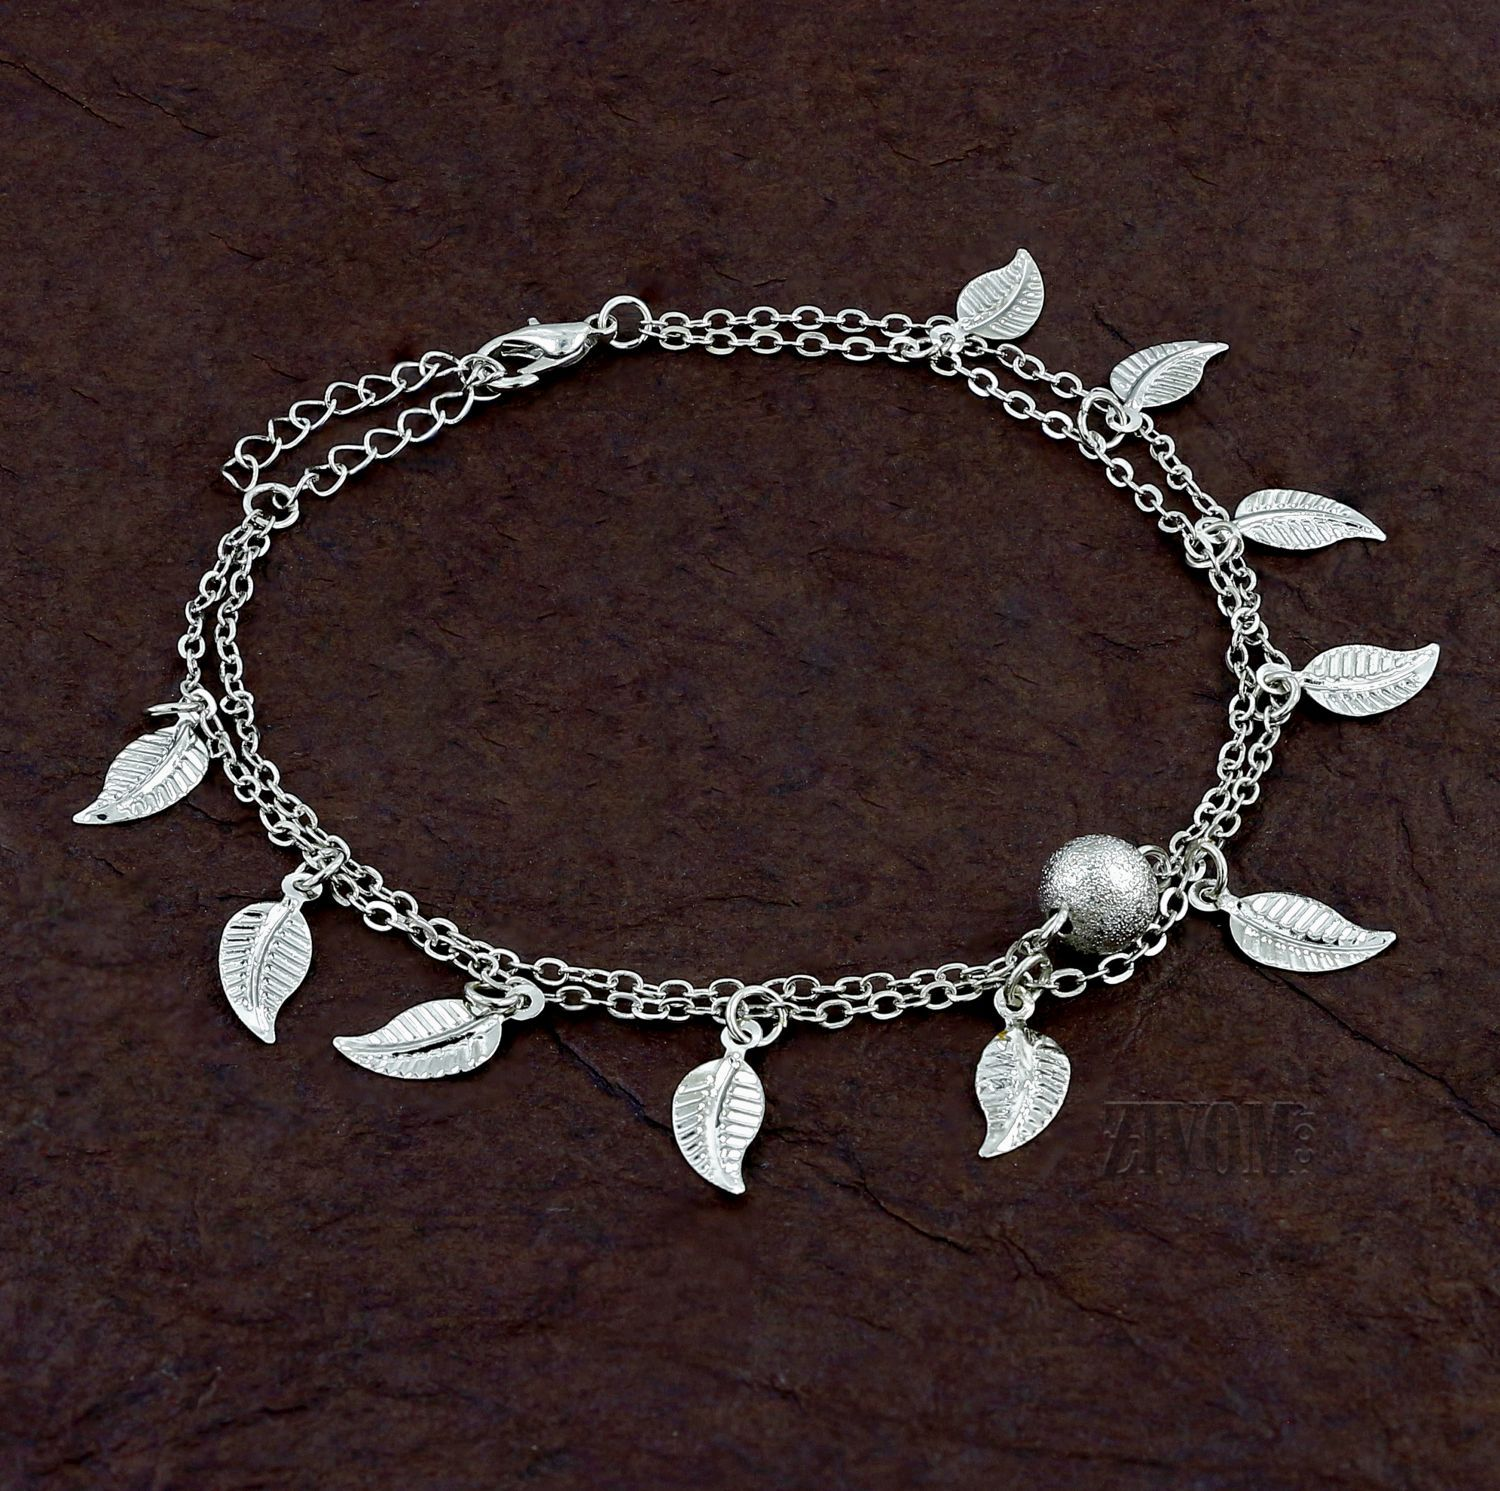 Zivom® Leaf Stylish Indo Western Dainty Delicate Charms Single Leg Anklet Payal for Women Girls